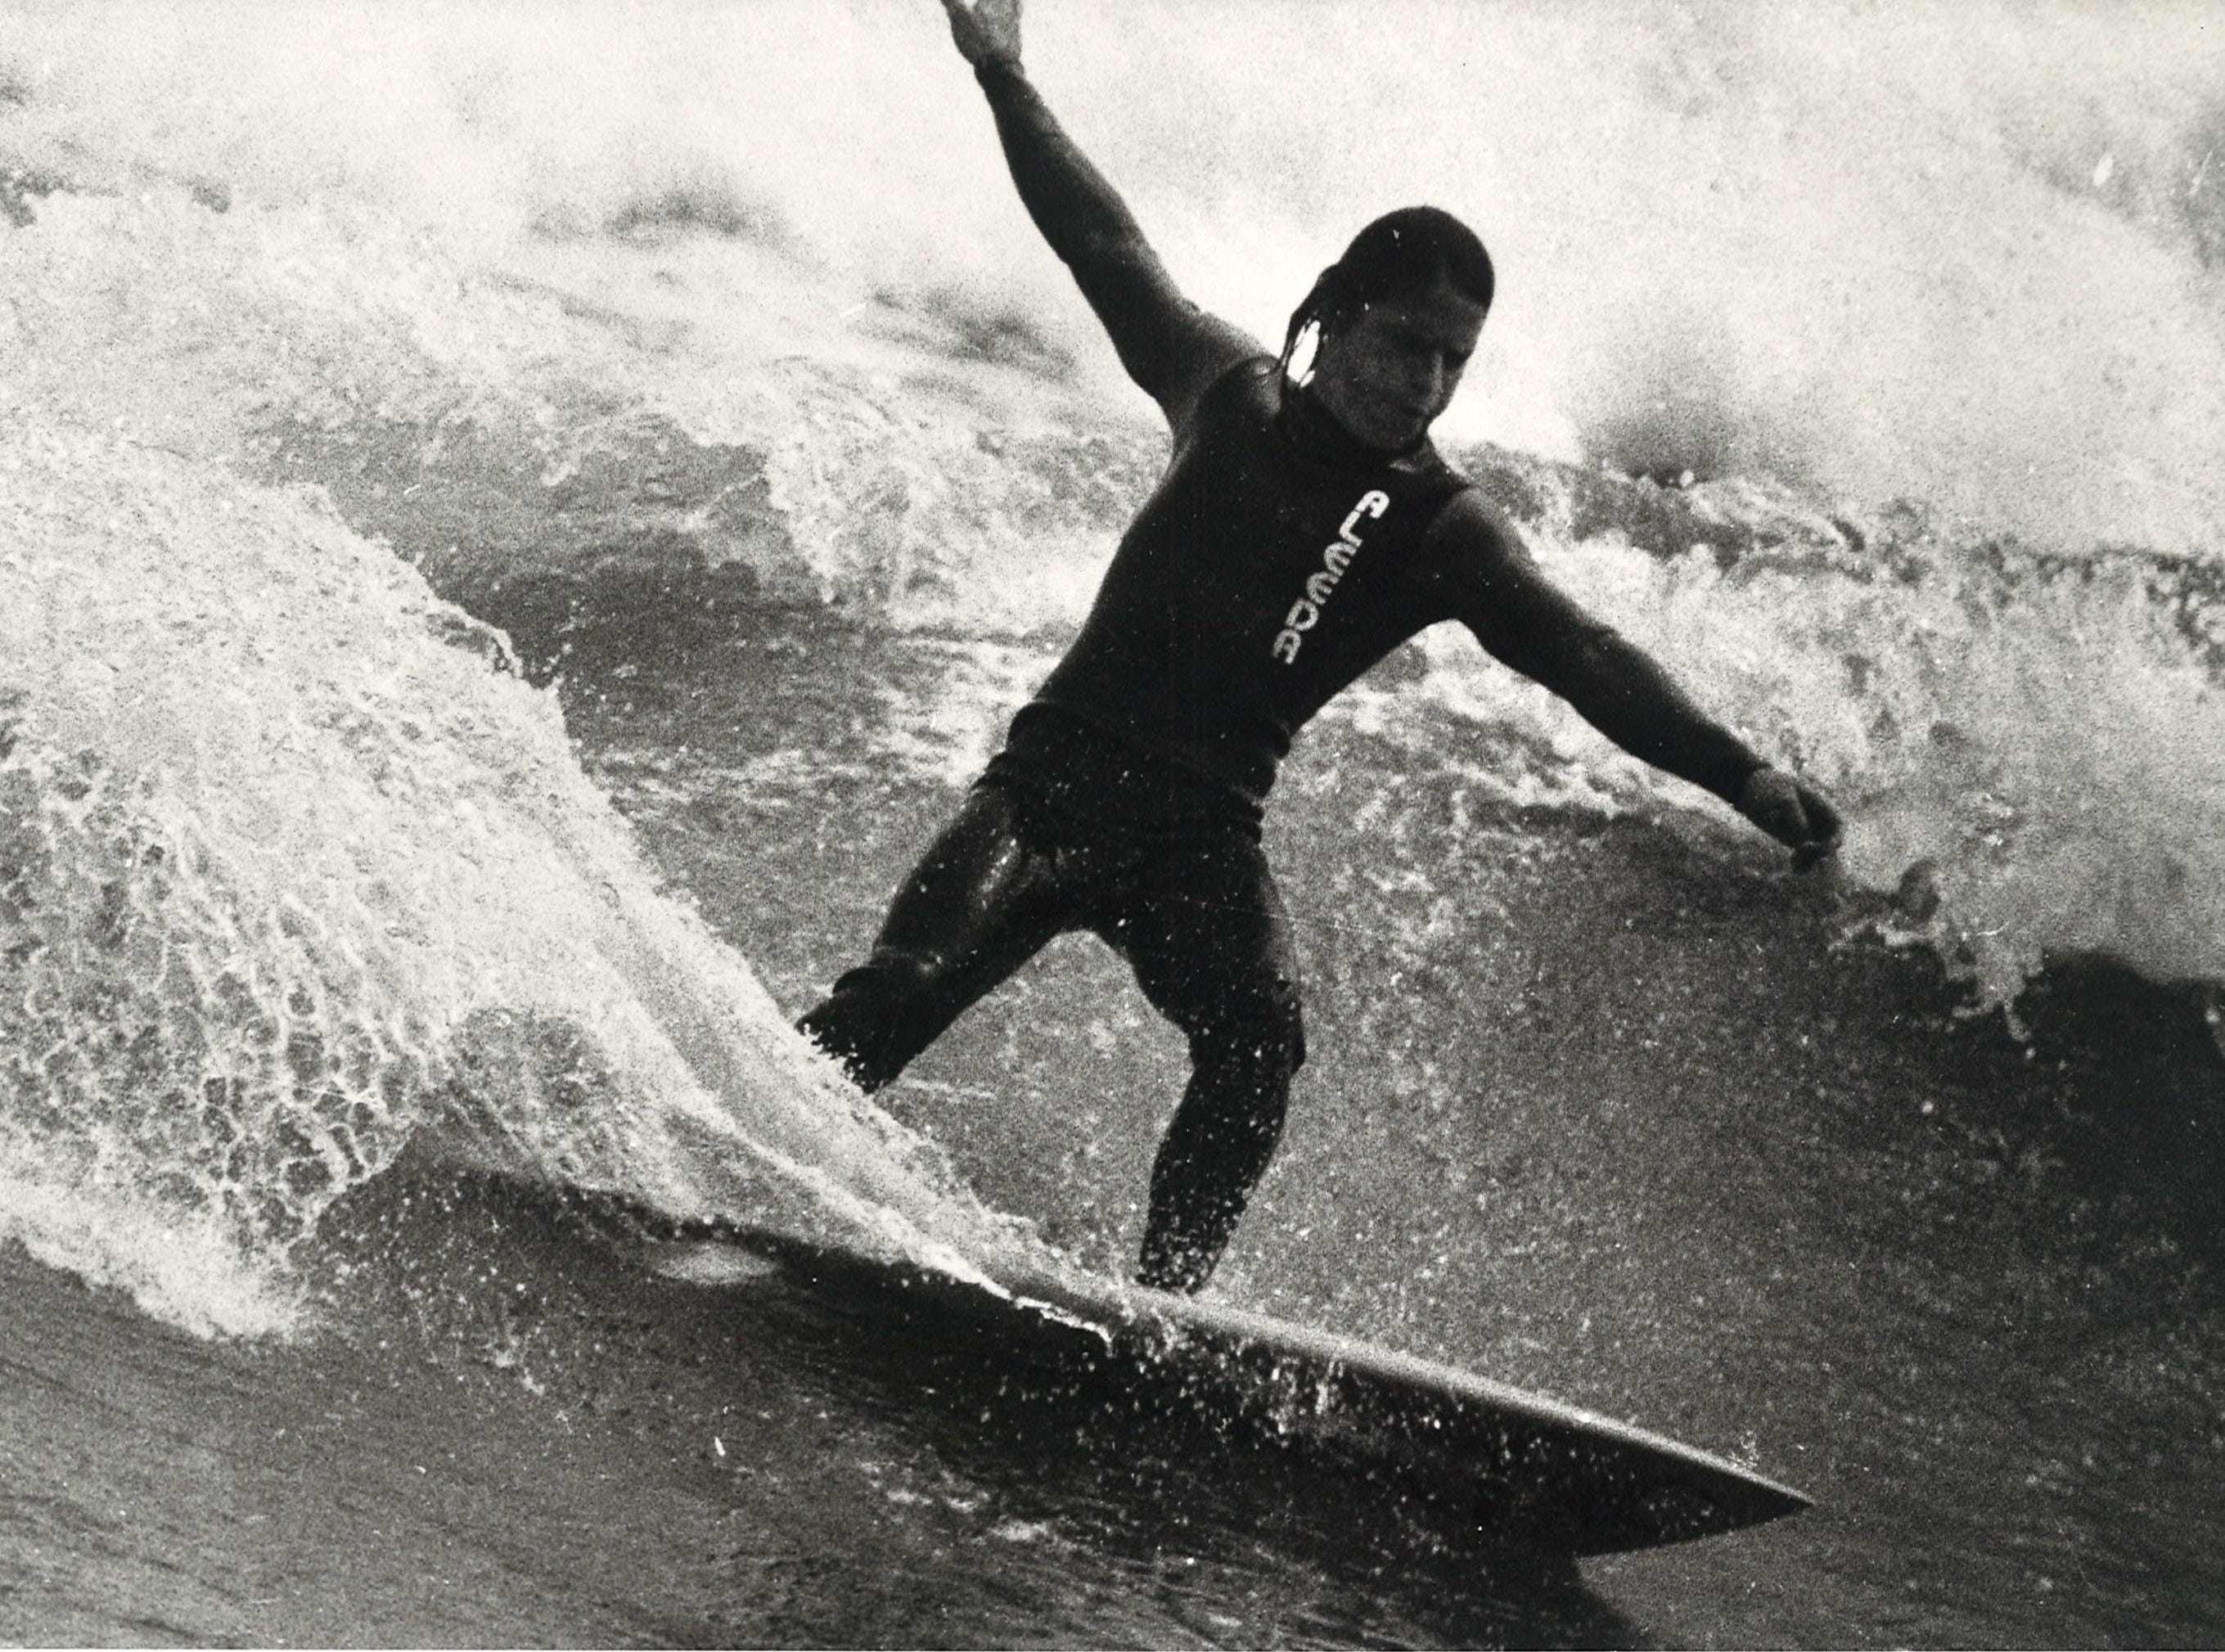 A surfer in Port Aransas on April 7, 1982.